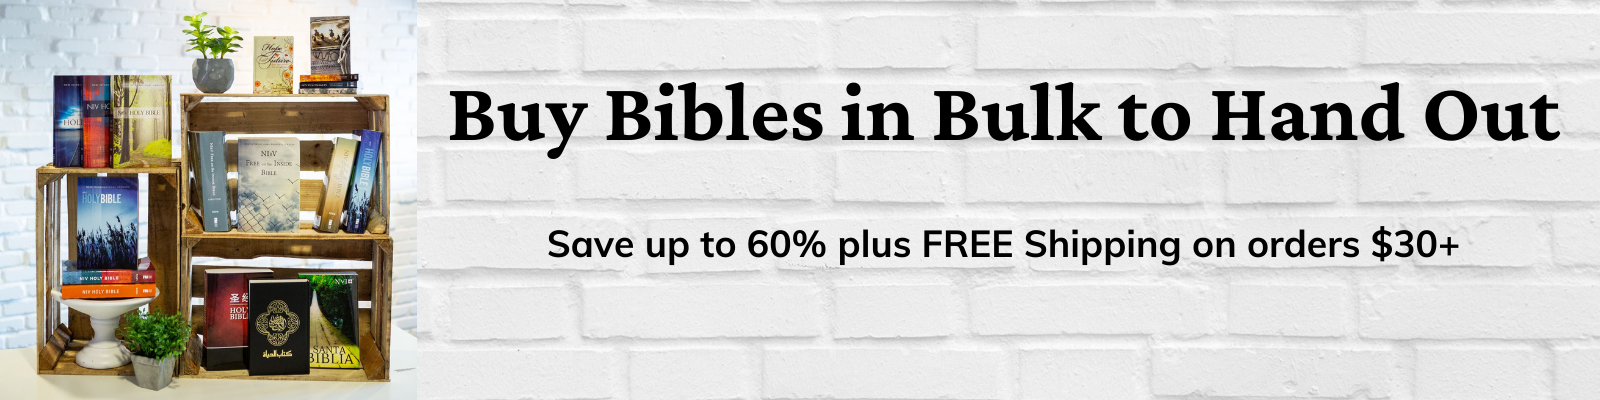 Low-Cost Outreach Bibles: Save up to 60% plus FREE Shipping on orders $30+